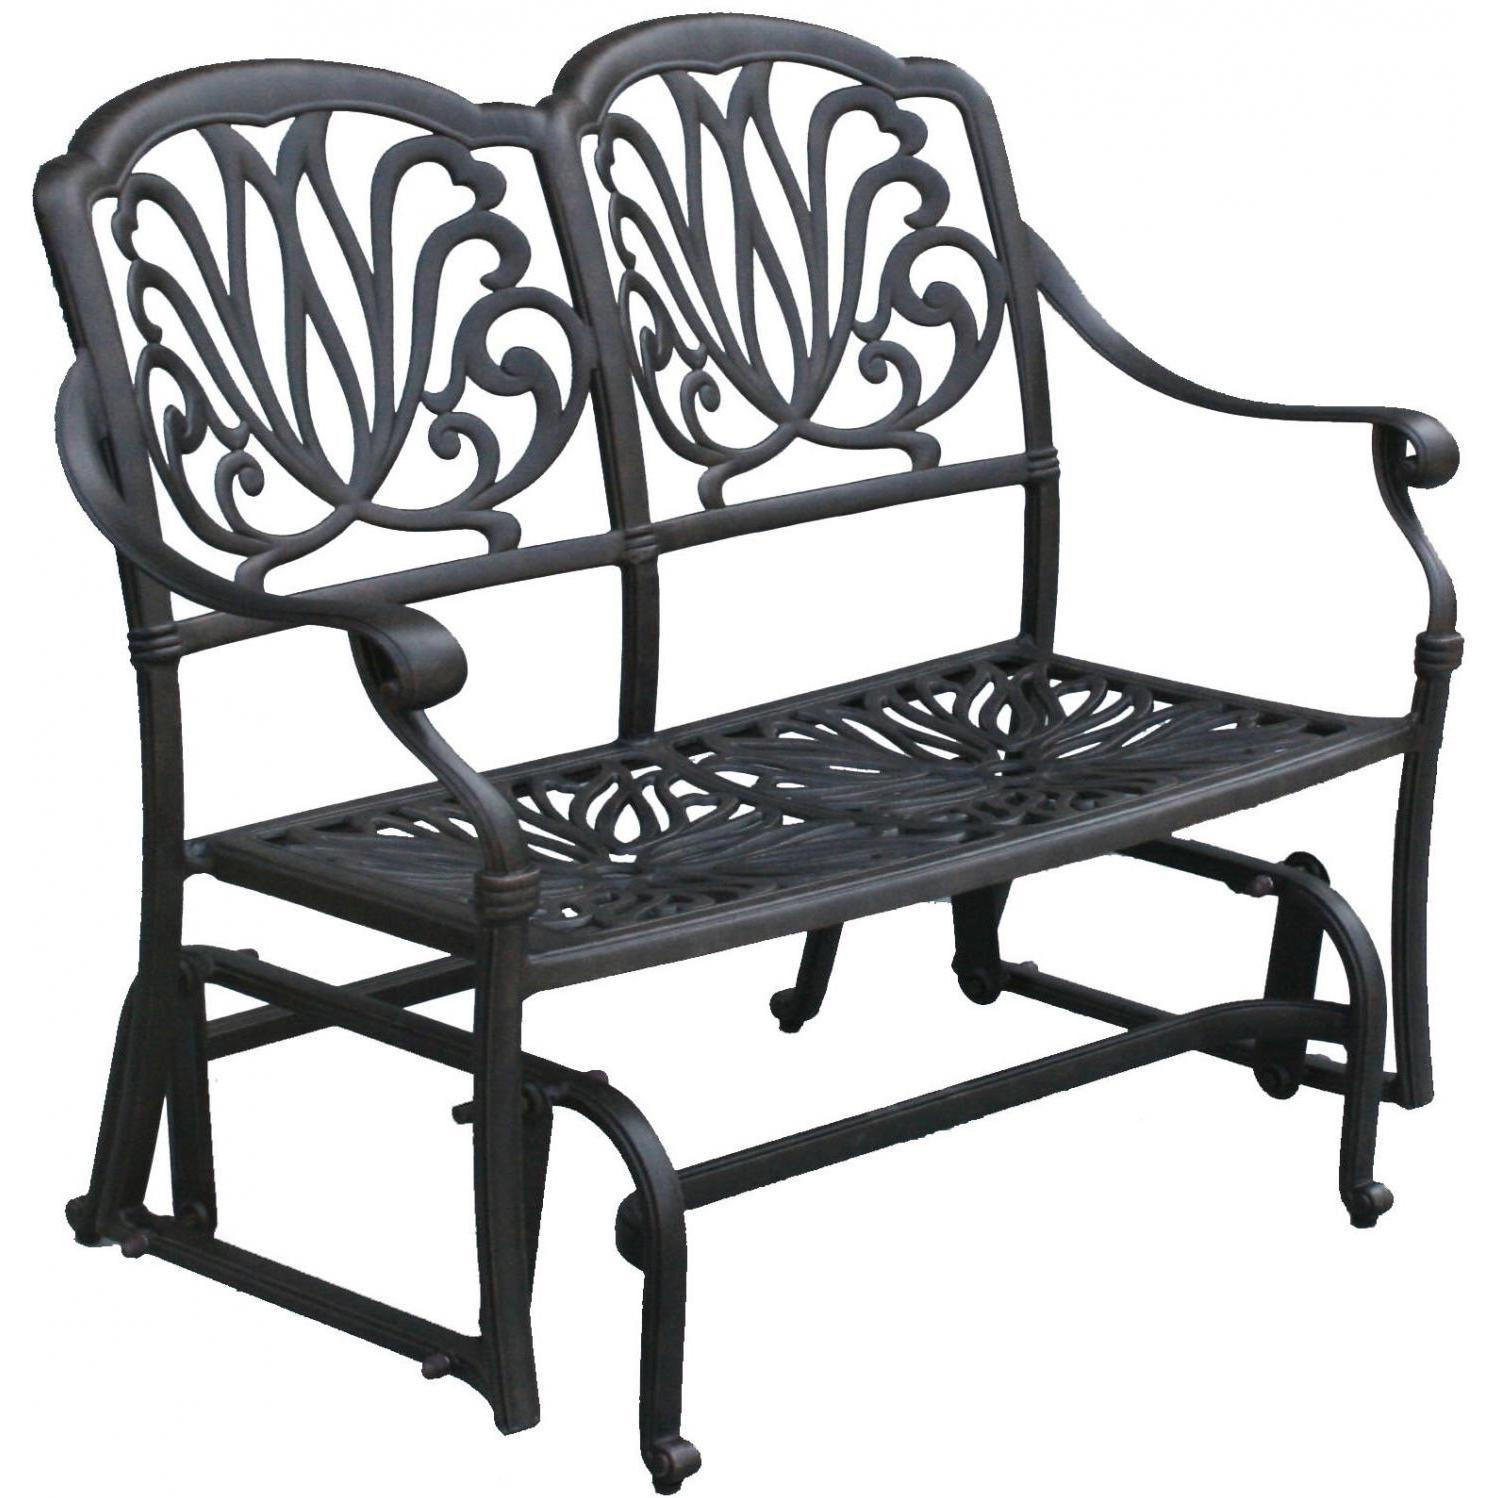 Darlee Elisabeth Cast Aluminum Patio Bench Glider | Products In Black Outdoor Durable Steel Frame Patio Swing Glider Bench Chairs (Image 8 of 25)